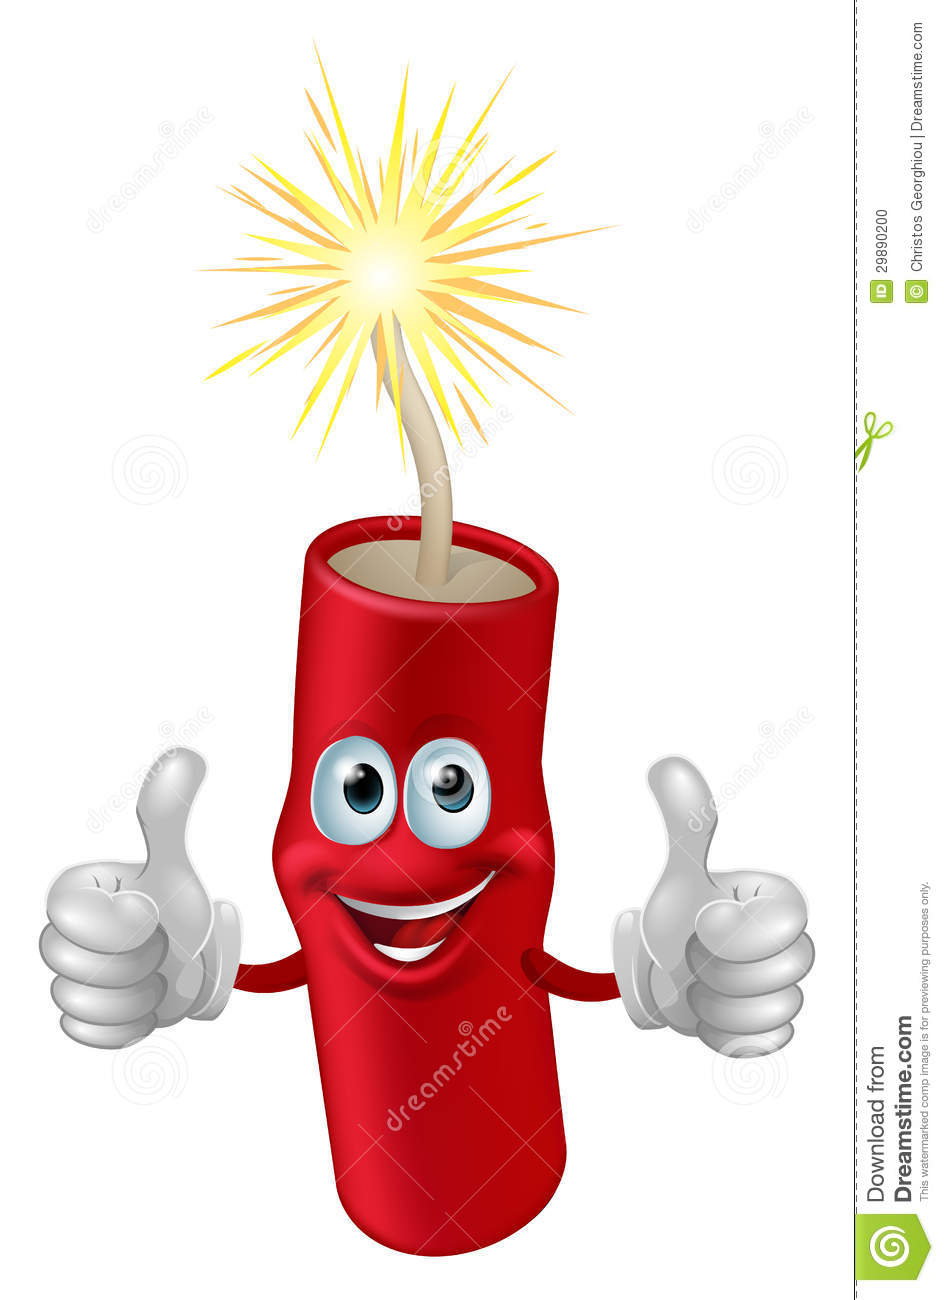 Illustration of a cartoon firework, firecracker or dynamite character.